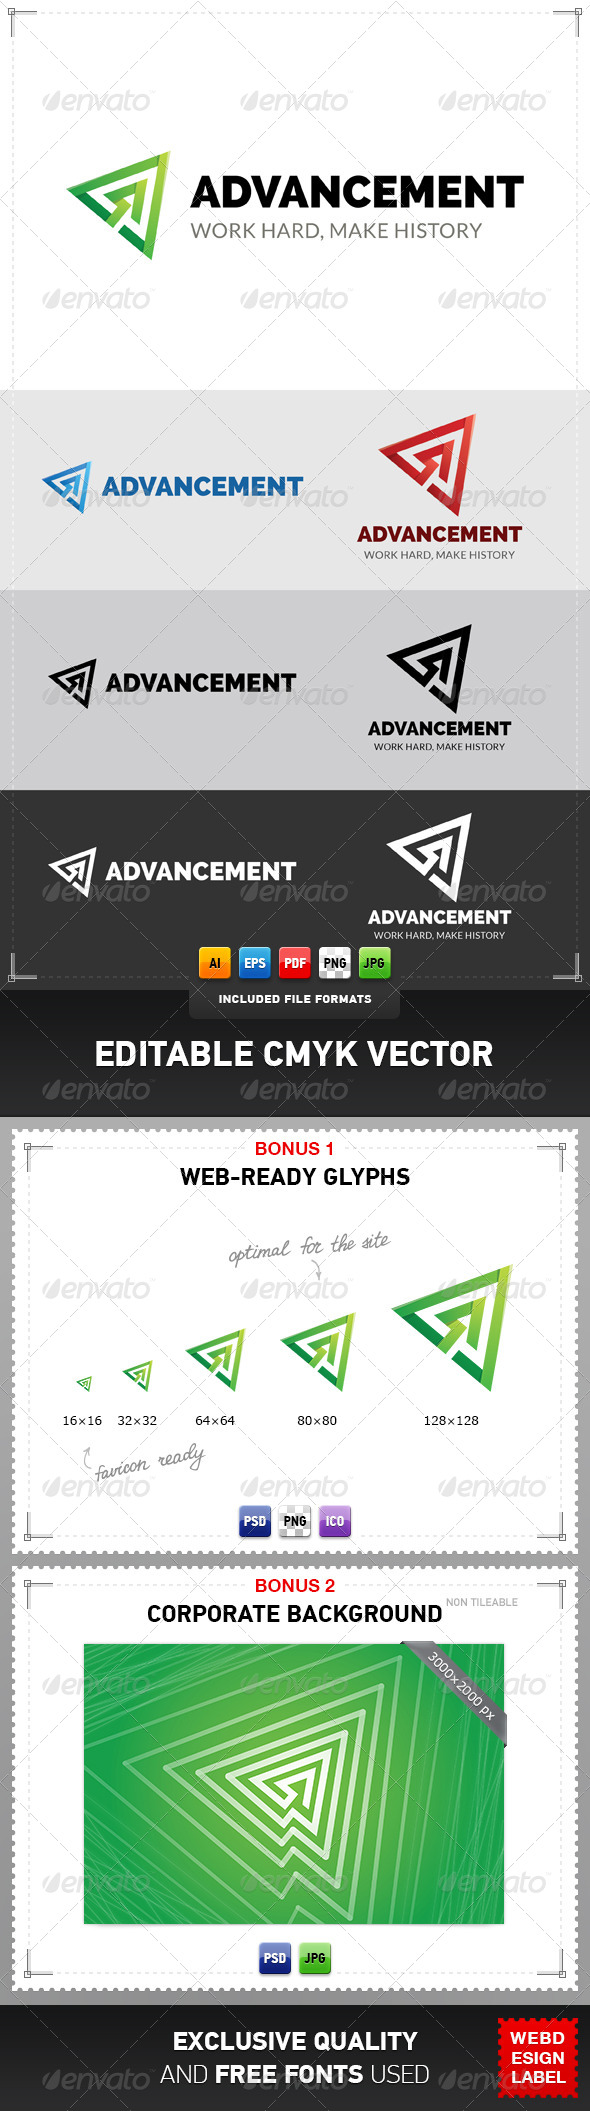 GraphicRiver Advancement Logo 5032746